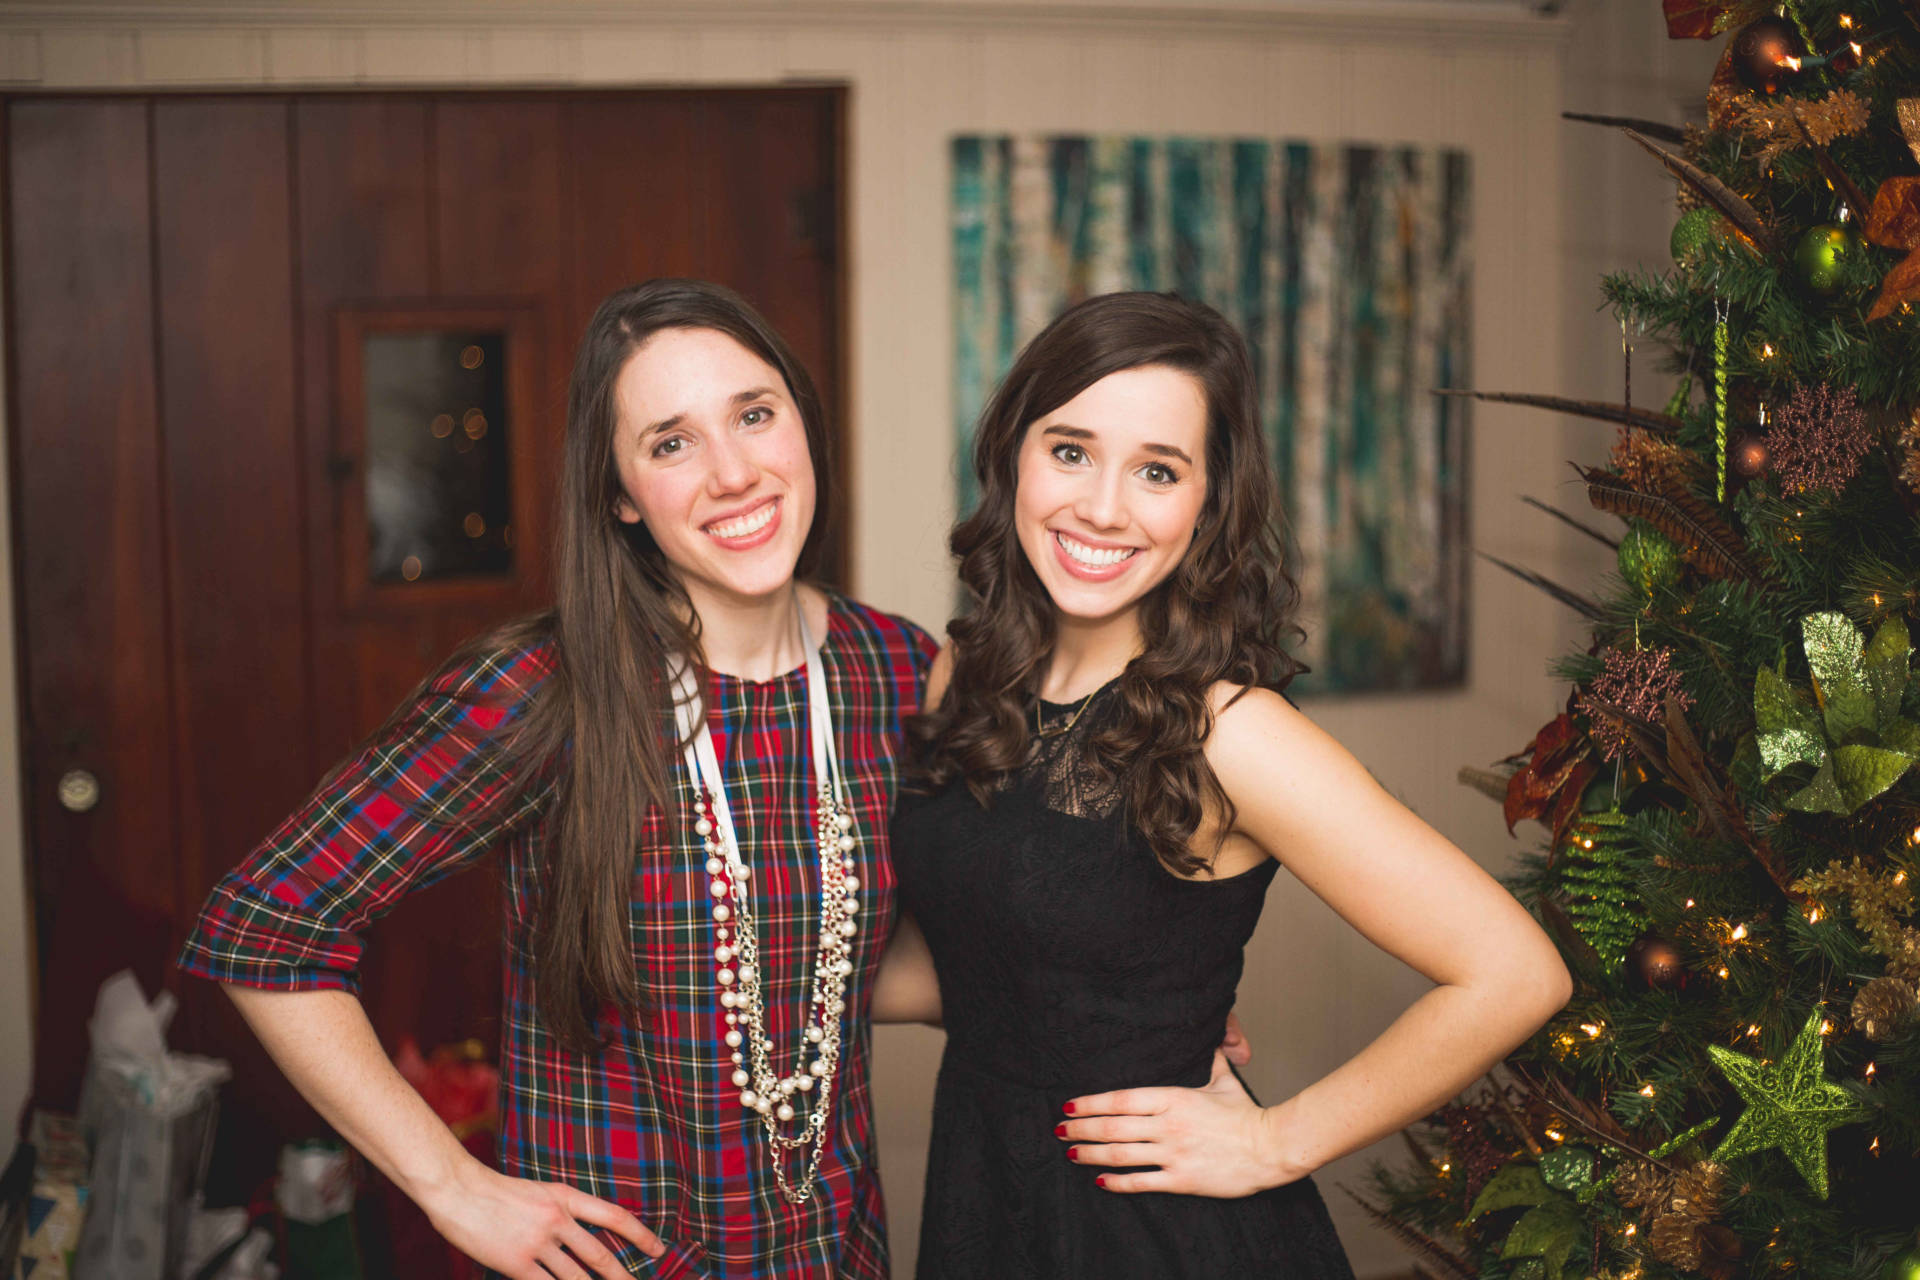 The Laurel Dress in Plaid - me and my sister Christmas Eve 2015